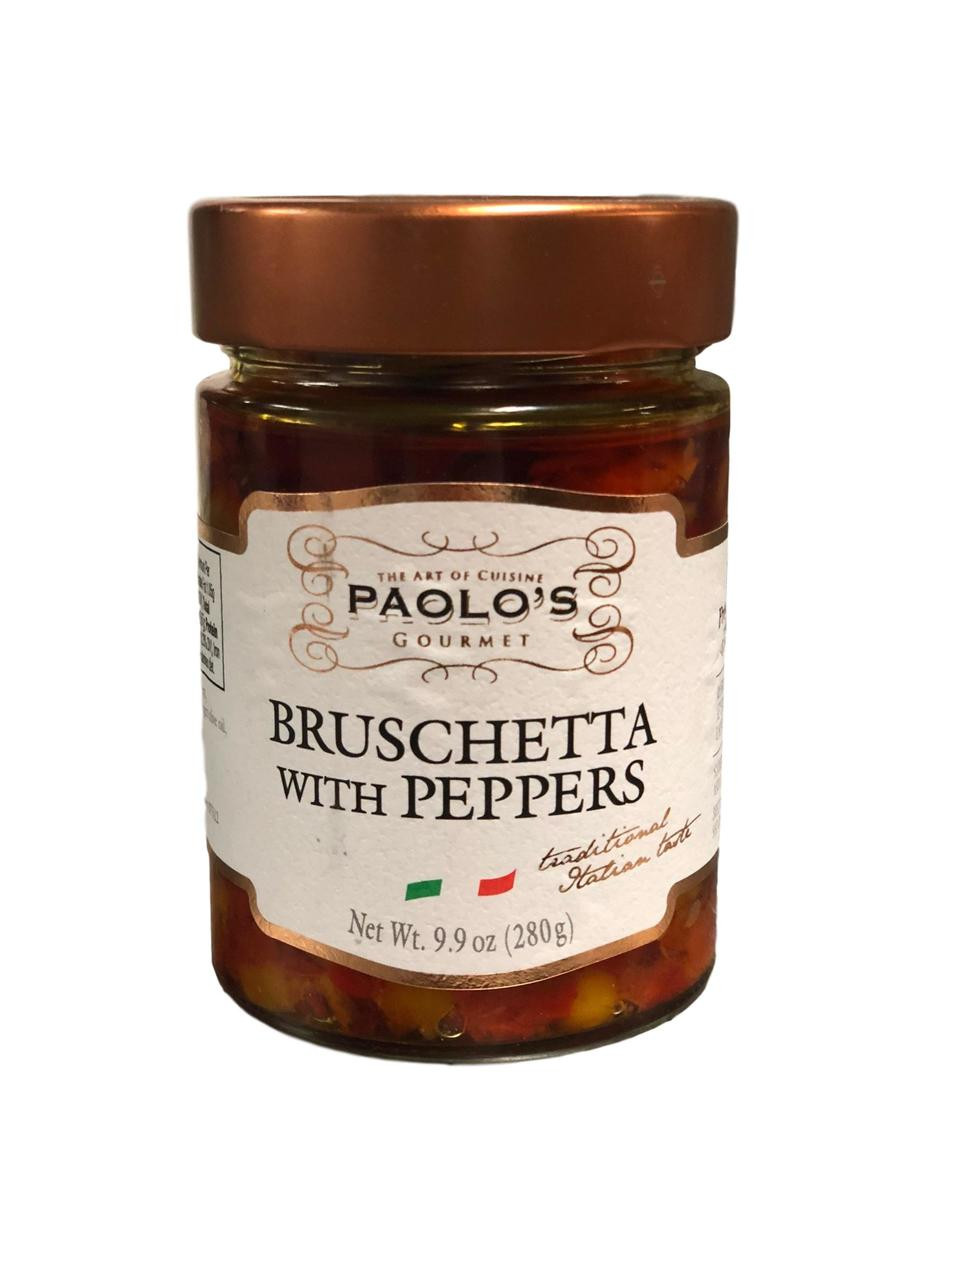 Paolo's Gourmet Bruschetta with Peppers